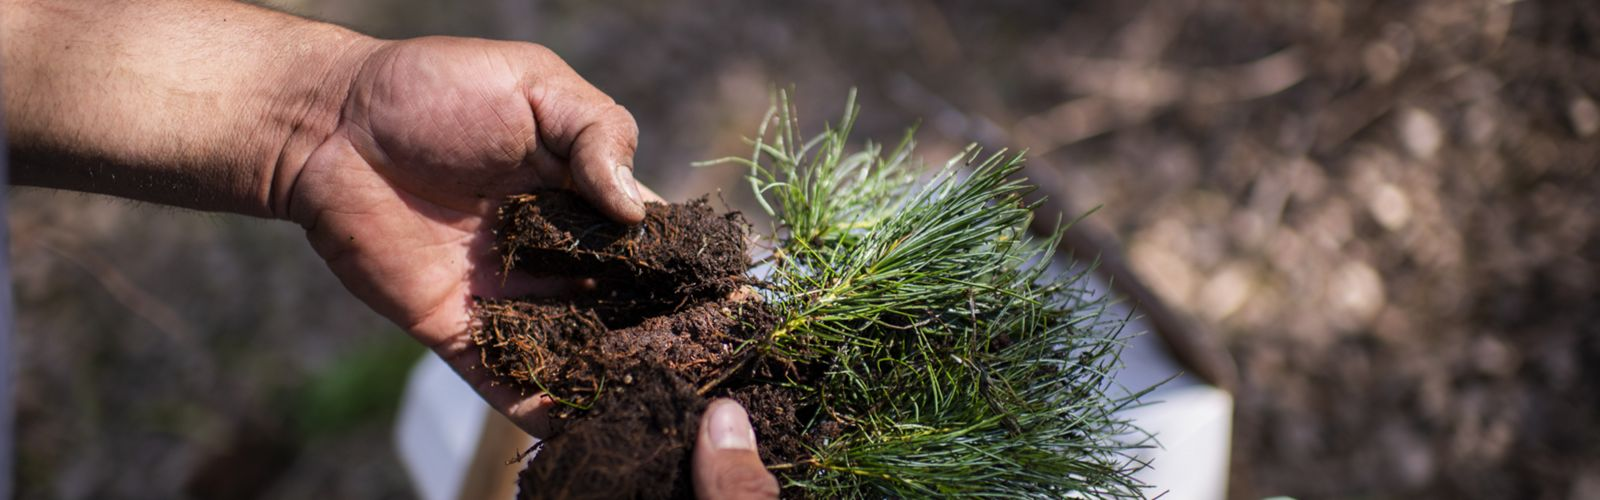 Two hands holding several pine seedlings, to be planted.